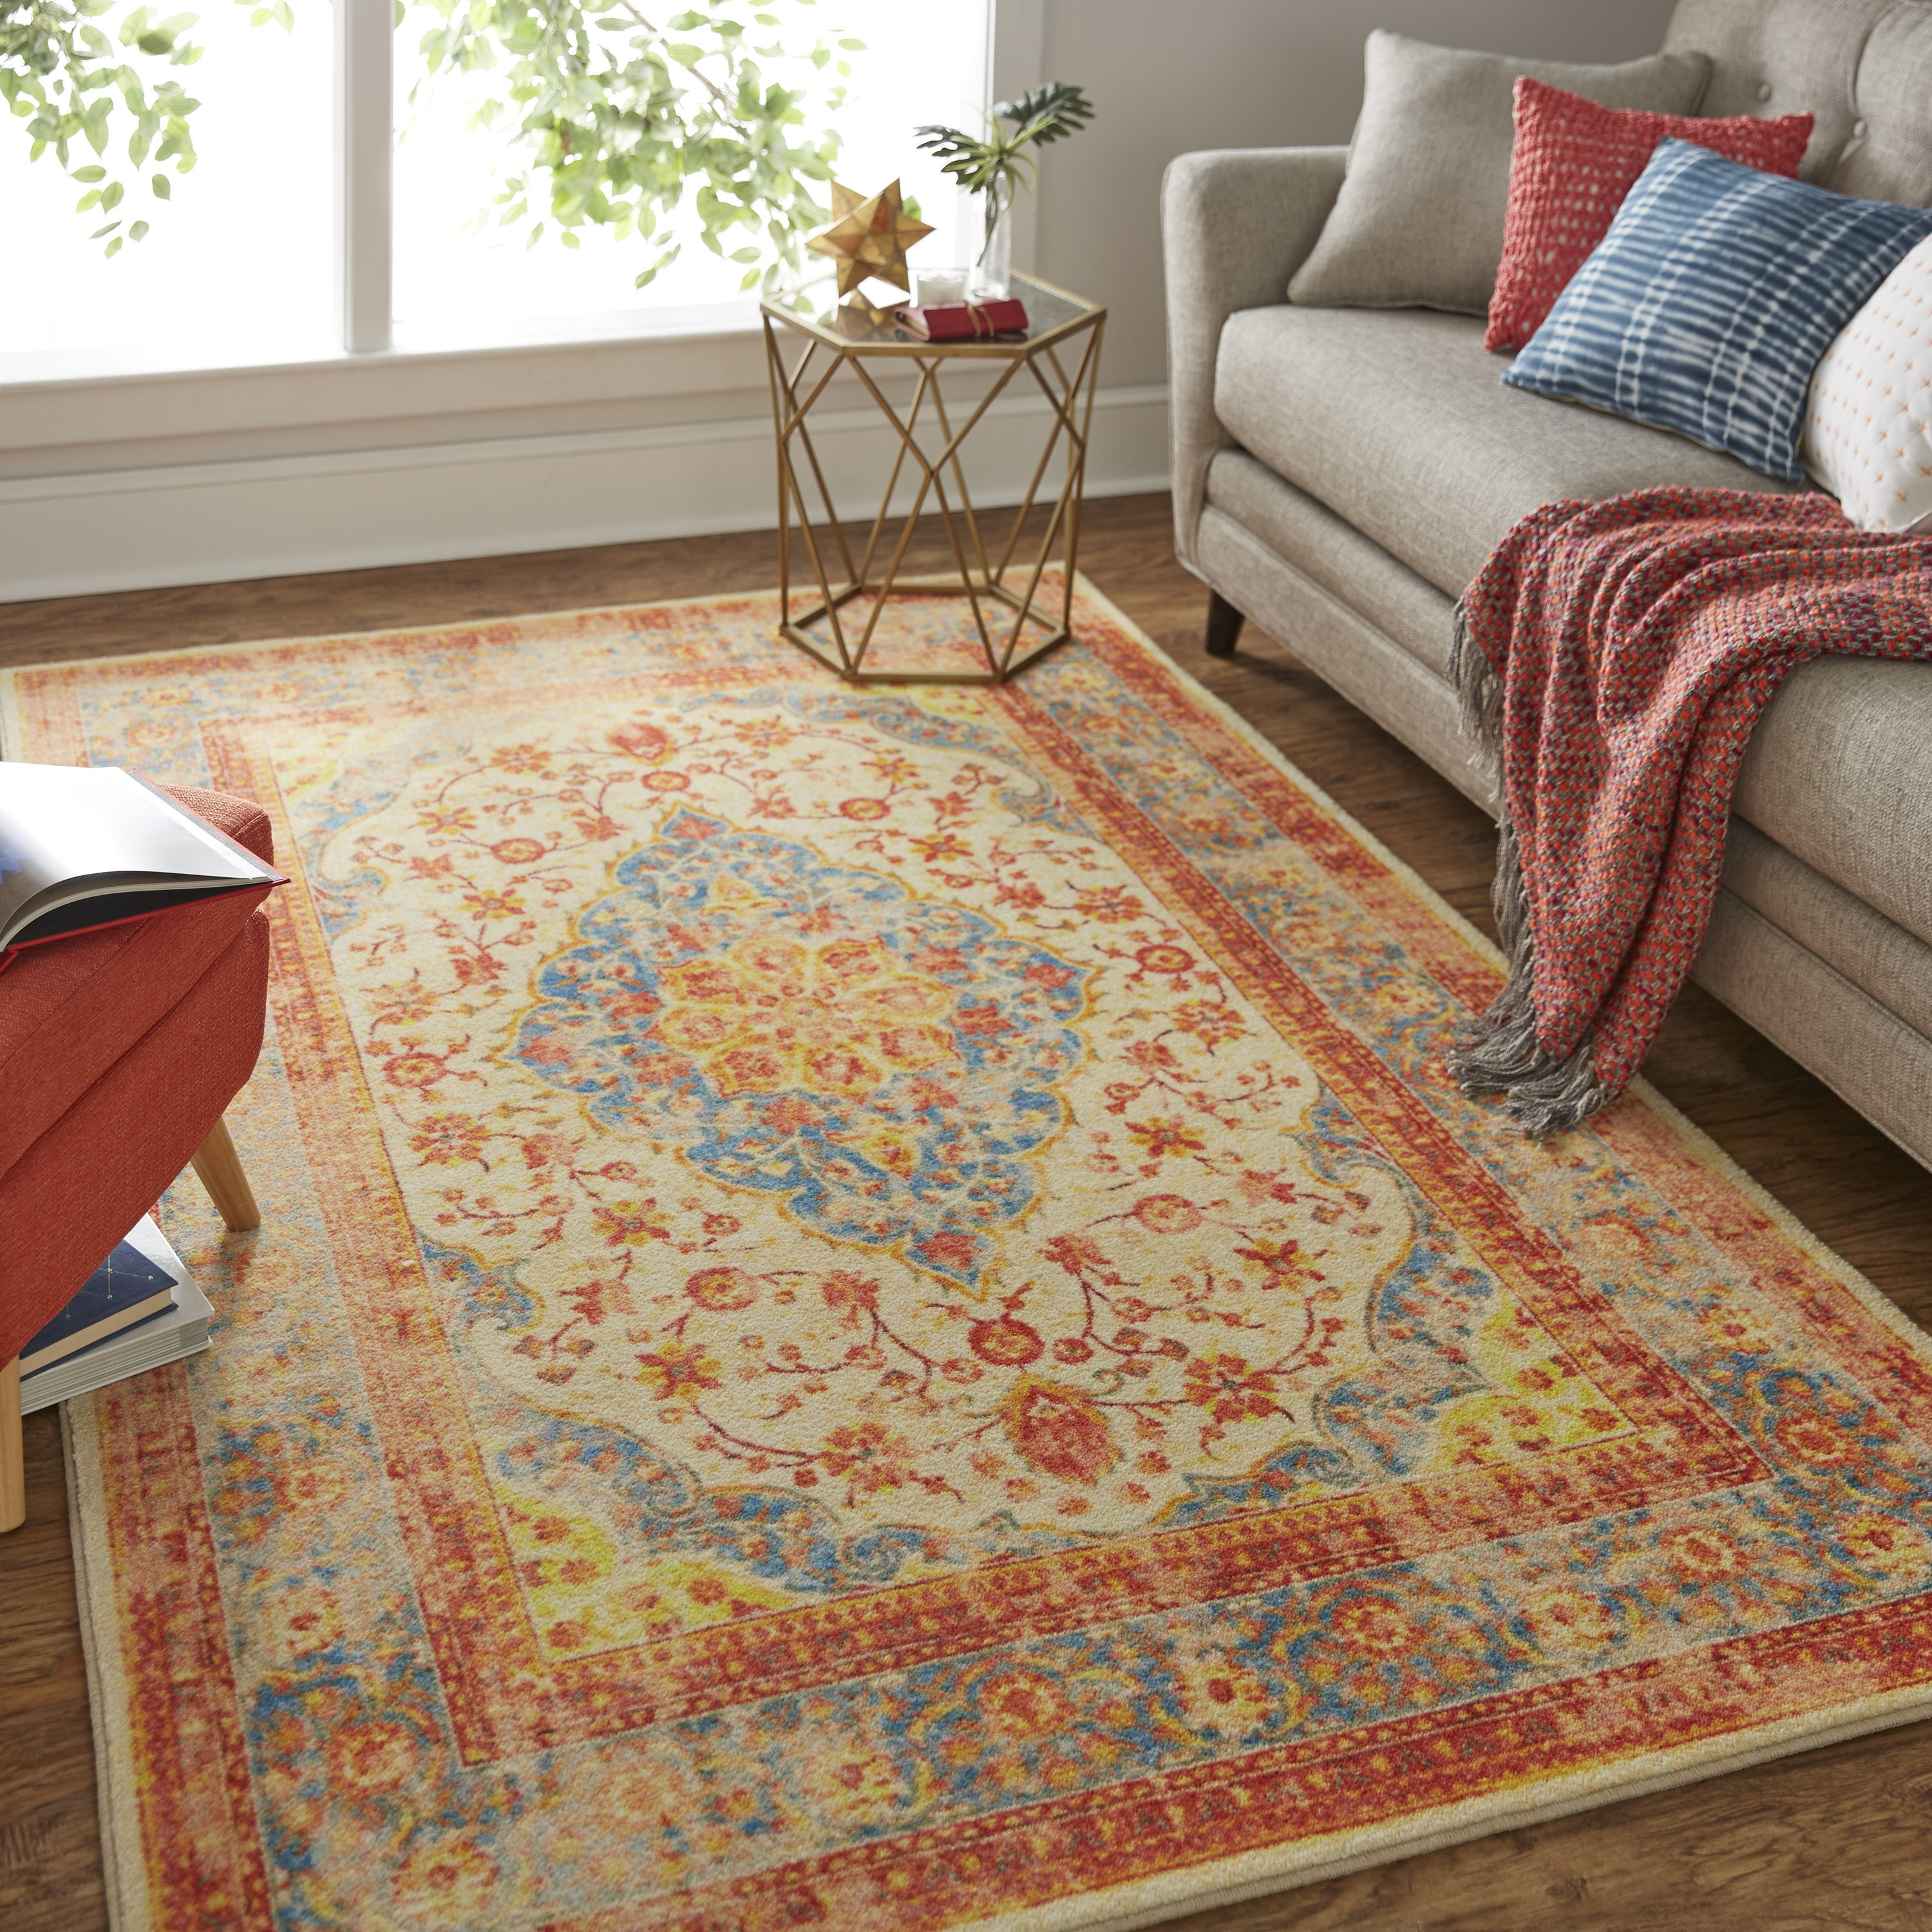 rugs terior space x sle spaces bed rug living area